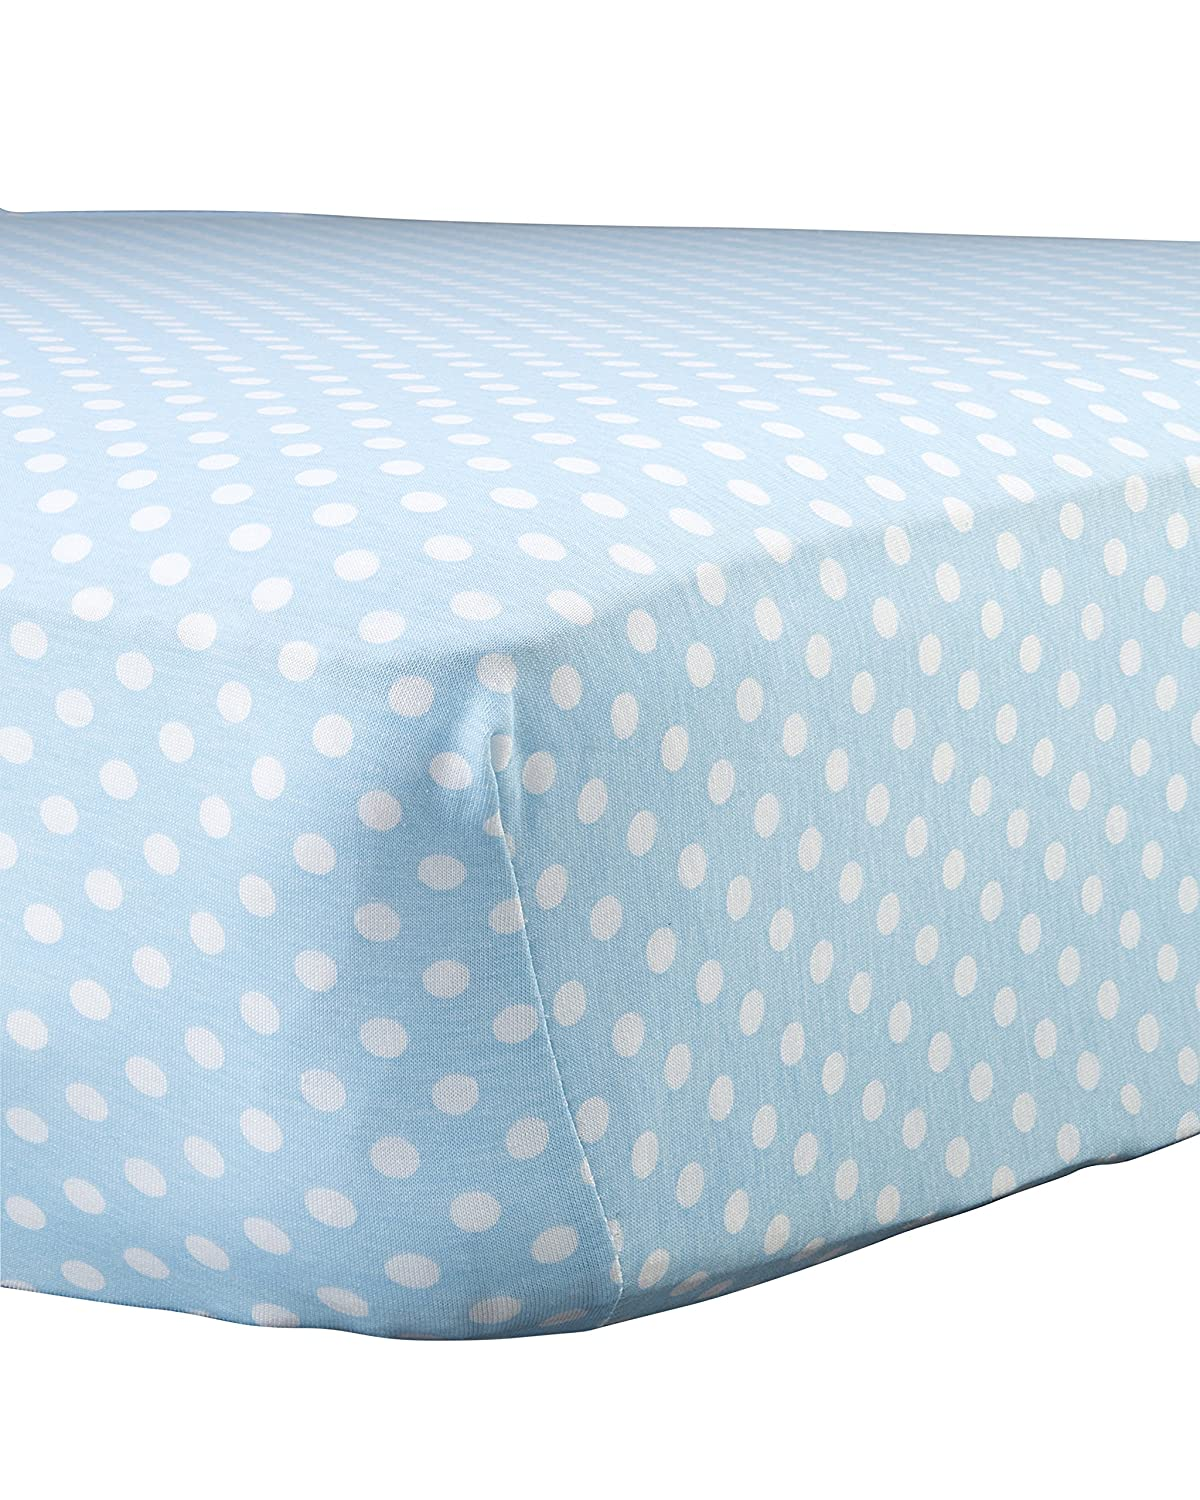 Abstract Baby Polka Dot Print Extra Deep Fitted Jersey Crib Sheet (24 x 38, Blue) by Abstract   B00SIZOGK4